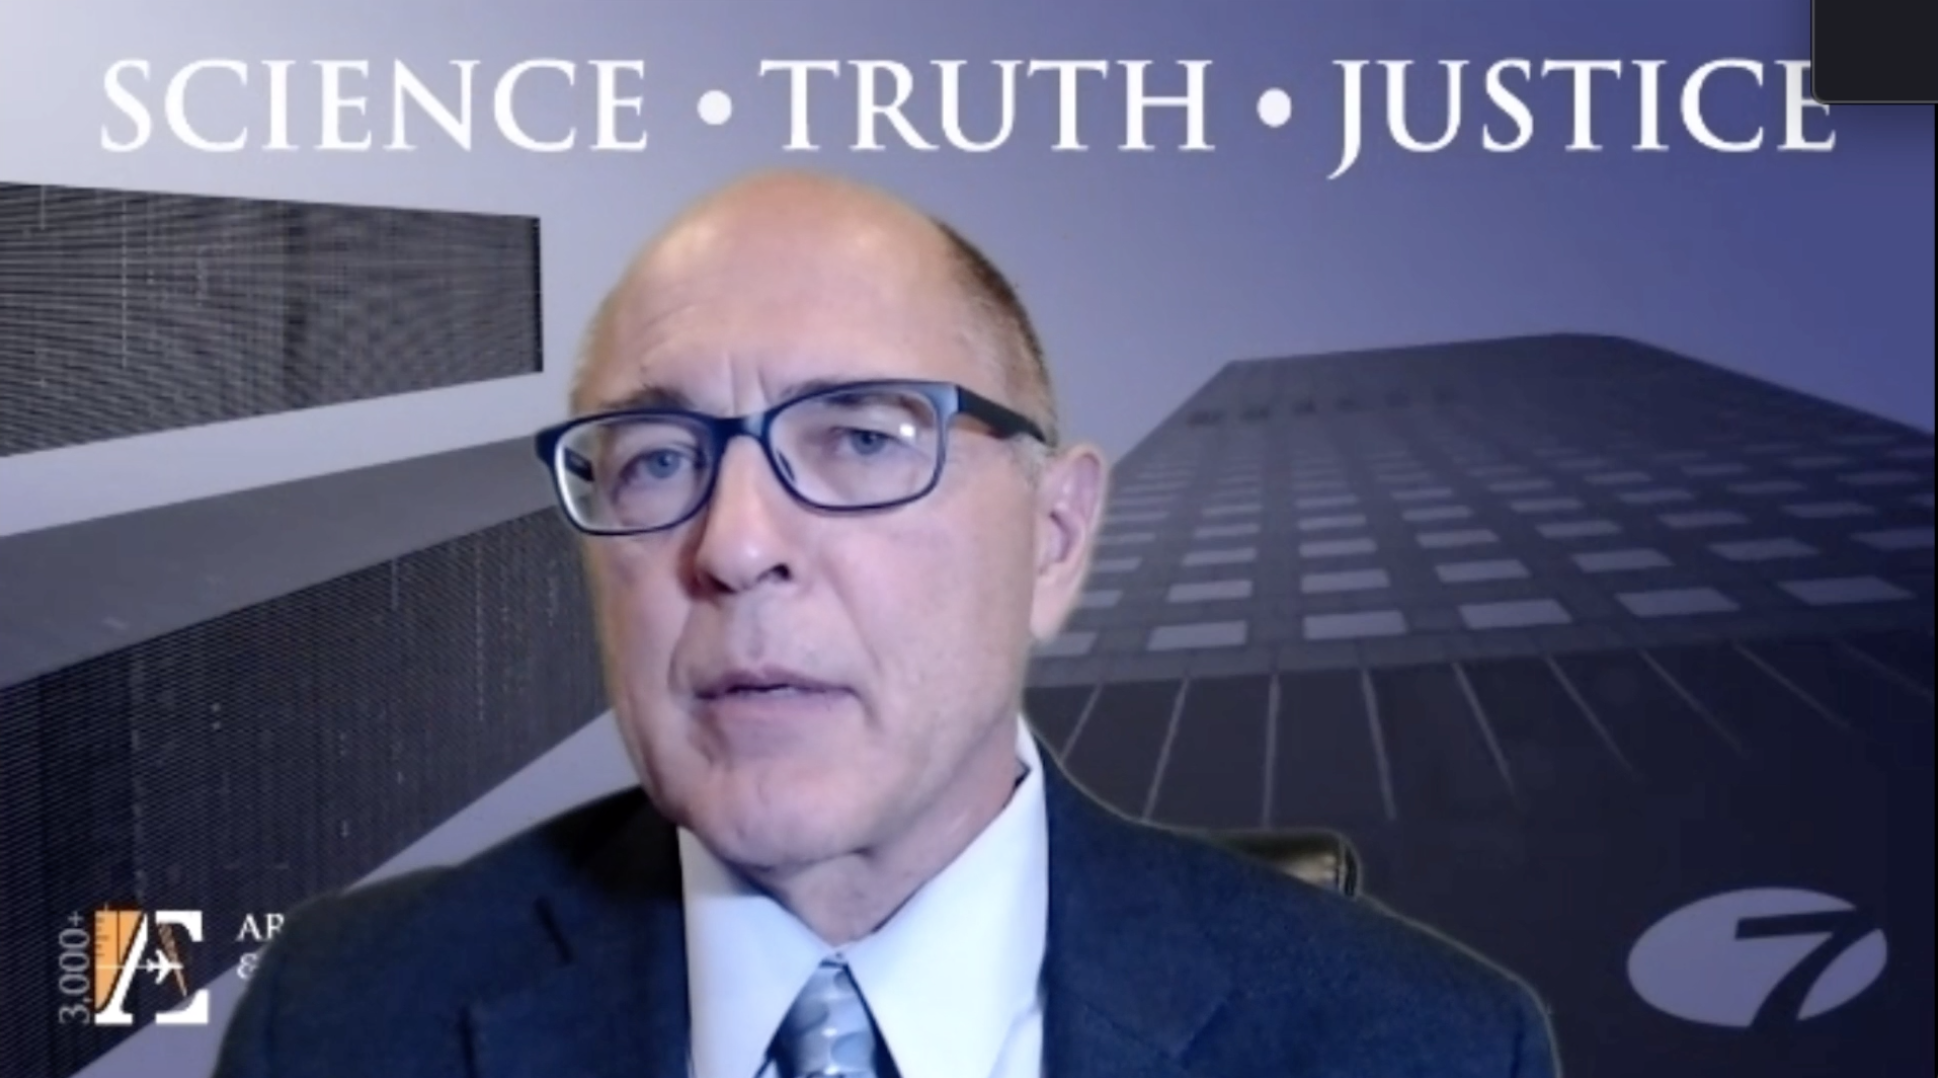 August 14, 2020 Richard Gage, A&E for 9/11 Truth